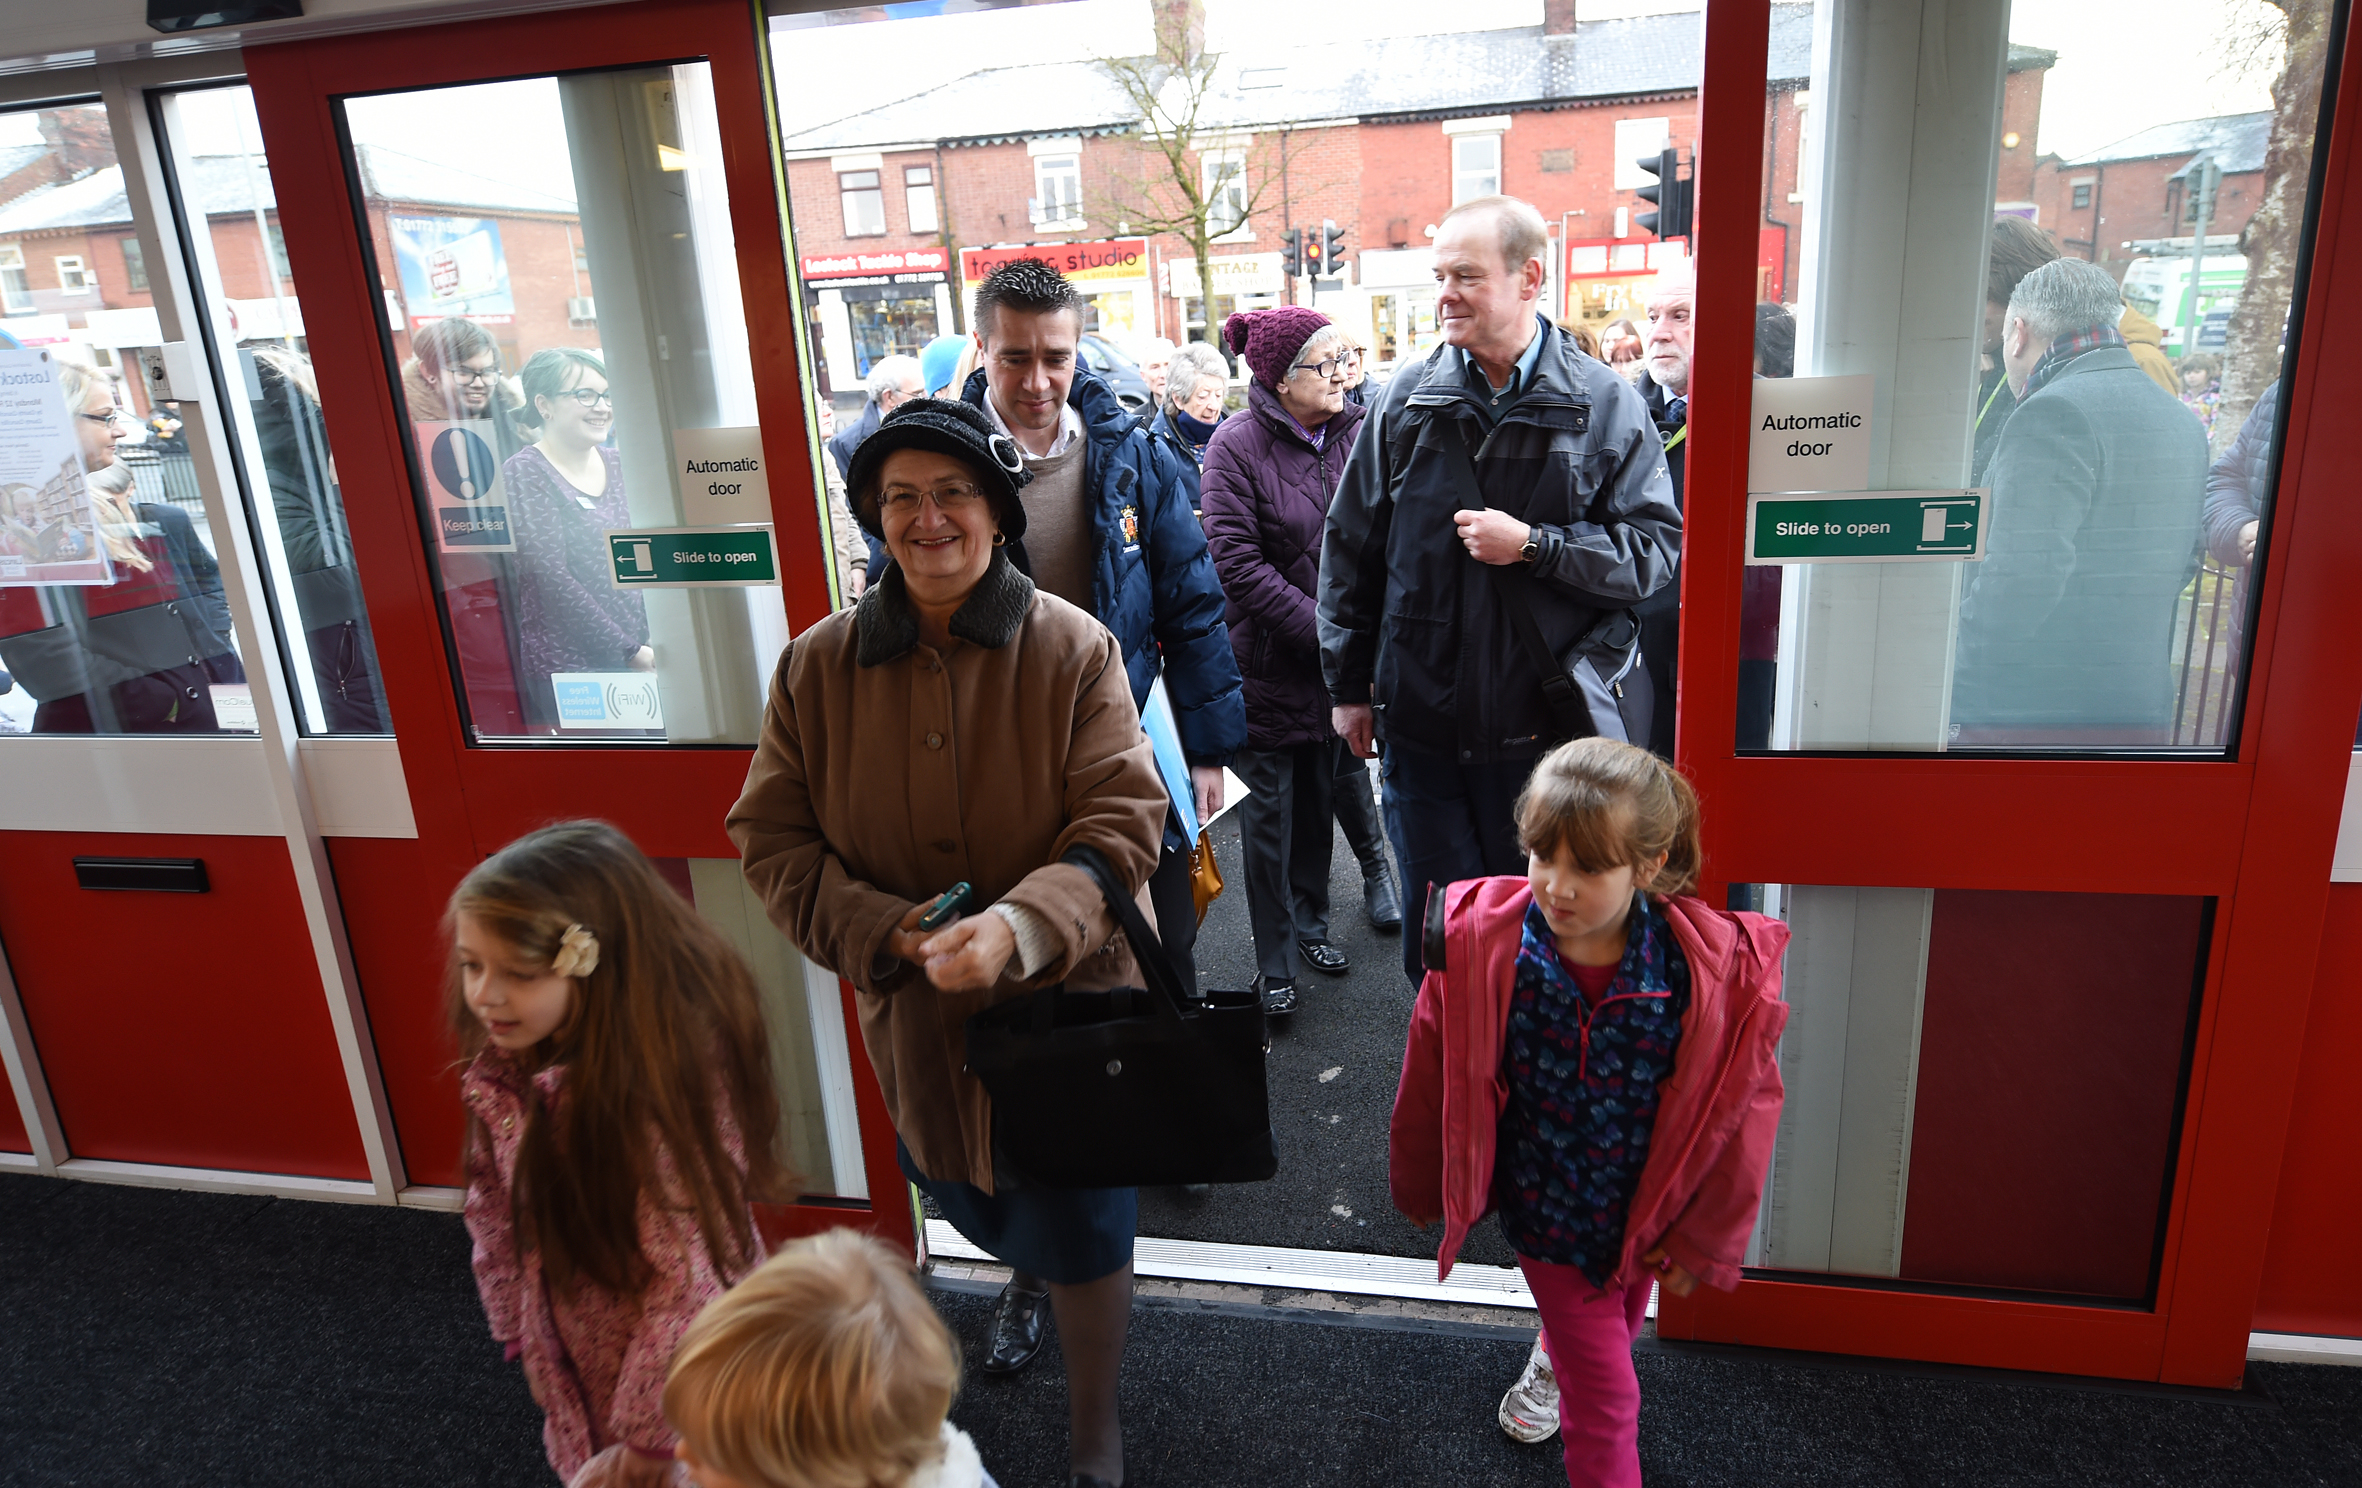 Delighted members of the public entering Lostock Hall library